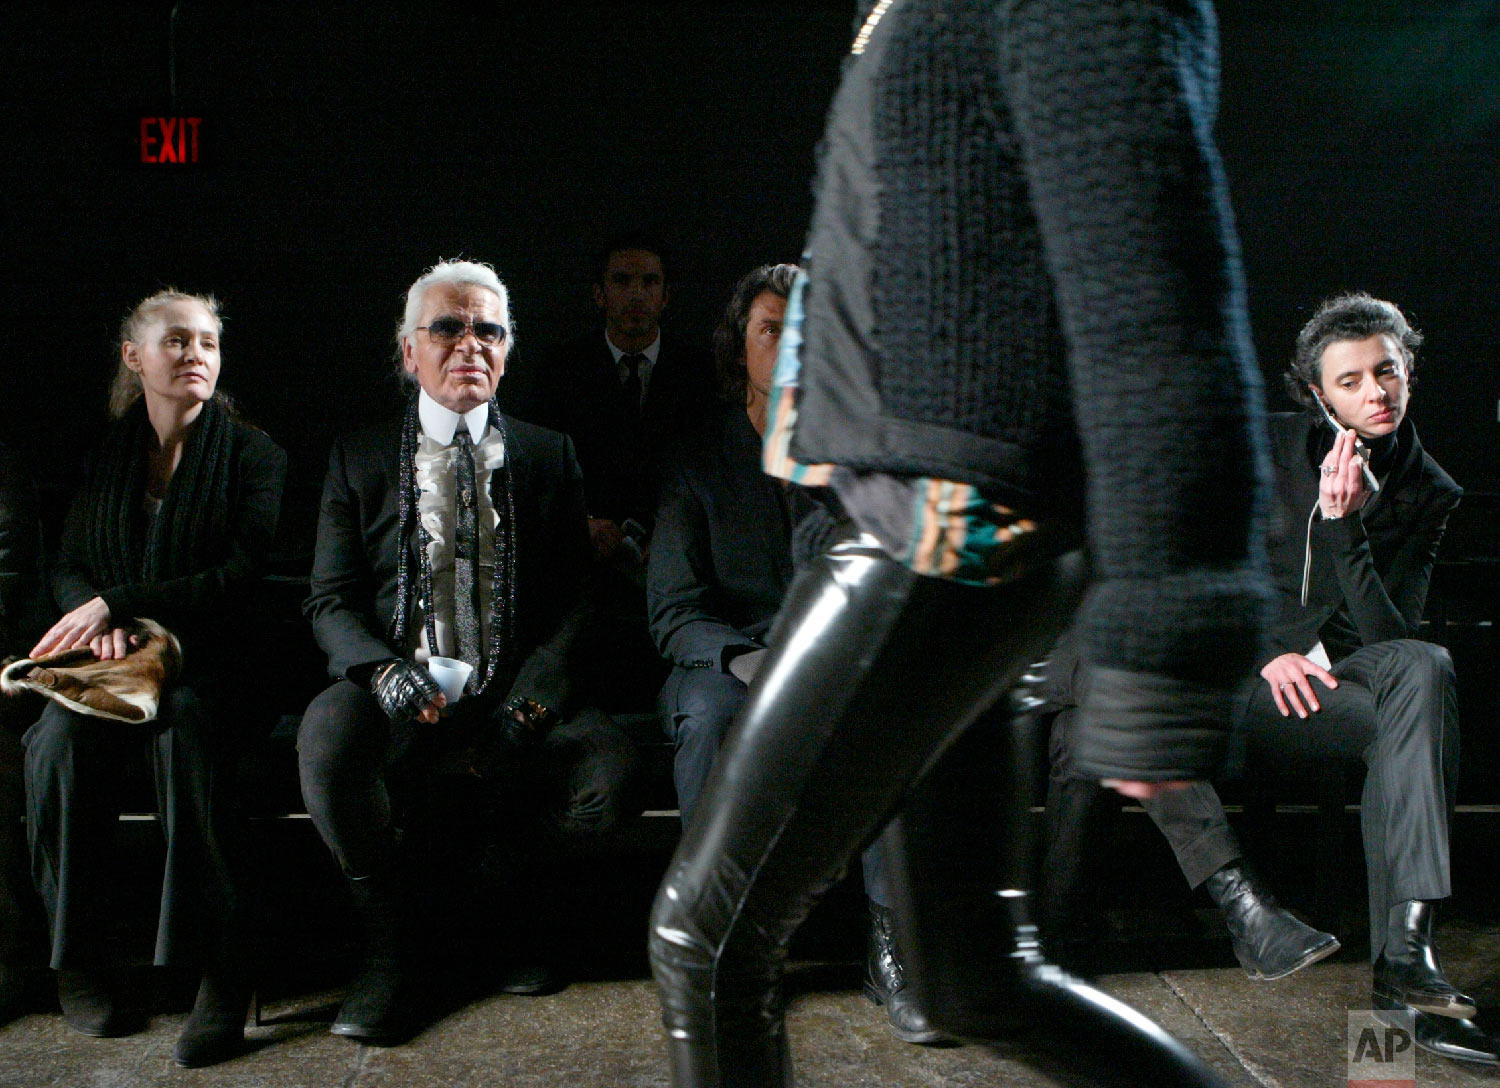 Karl Lagerfeld, second from left, and his creative director Melanie Ward, left, watch a rehearsal before the presentation of his fall 2006 collection on the last day of Fashion Week in New York, Feb. 10, 2006, (AP Photo/Diane Bondareff)